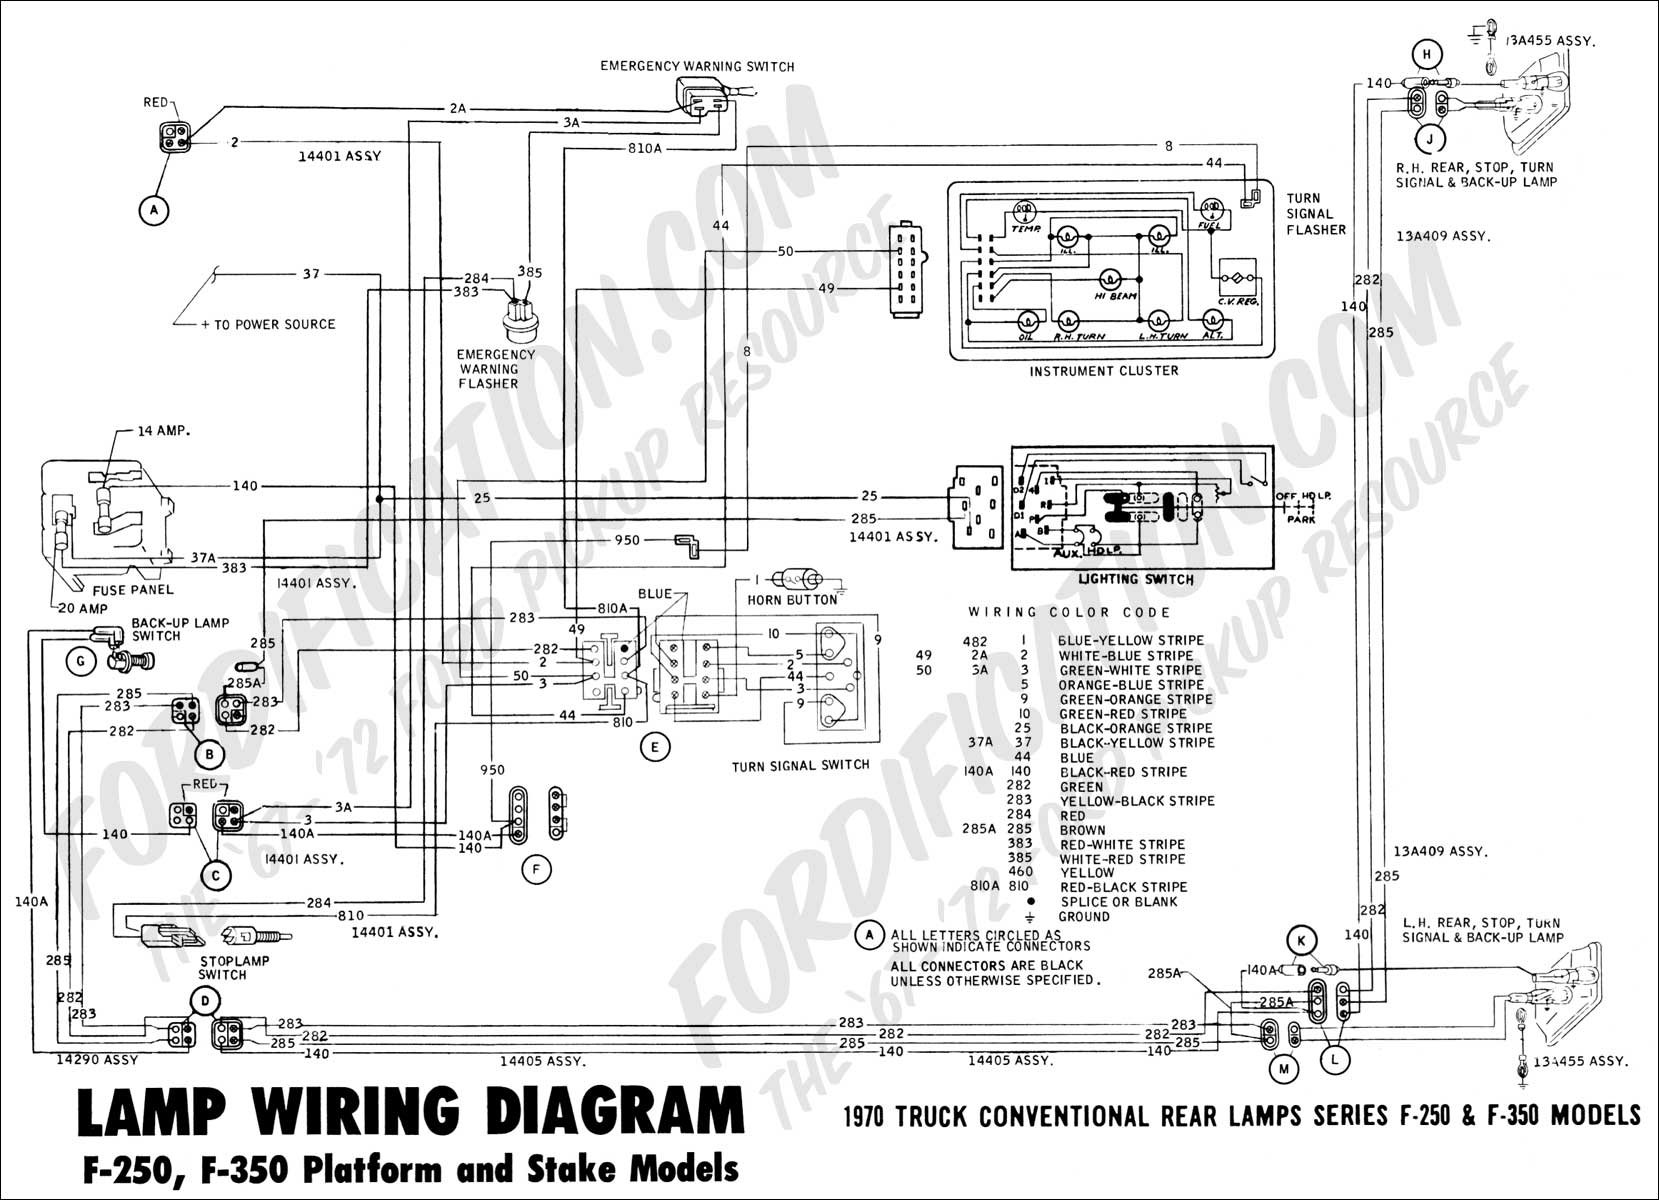 1991 Ford E350 Wiring Diagram Library E 150 Truck Technical Drawings And Schematics Section H E150 Conversion Van 1990 Computer